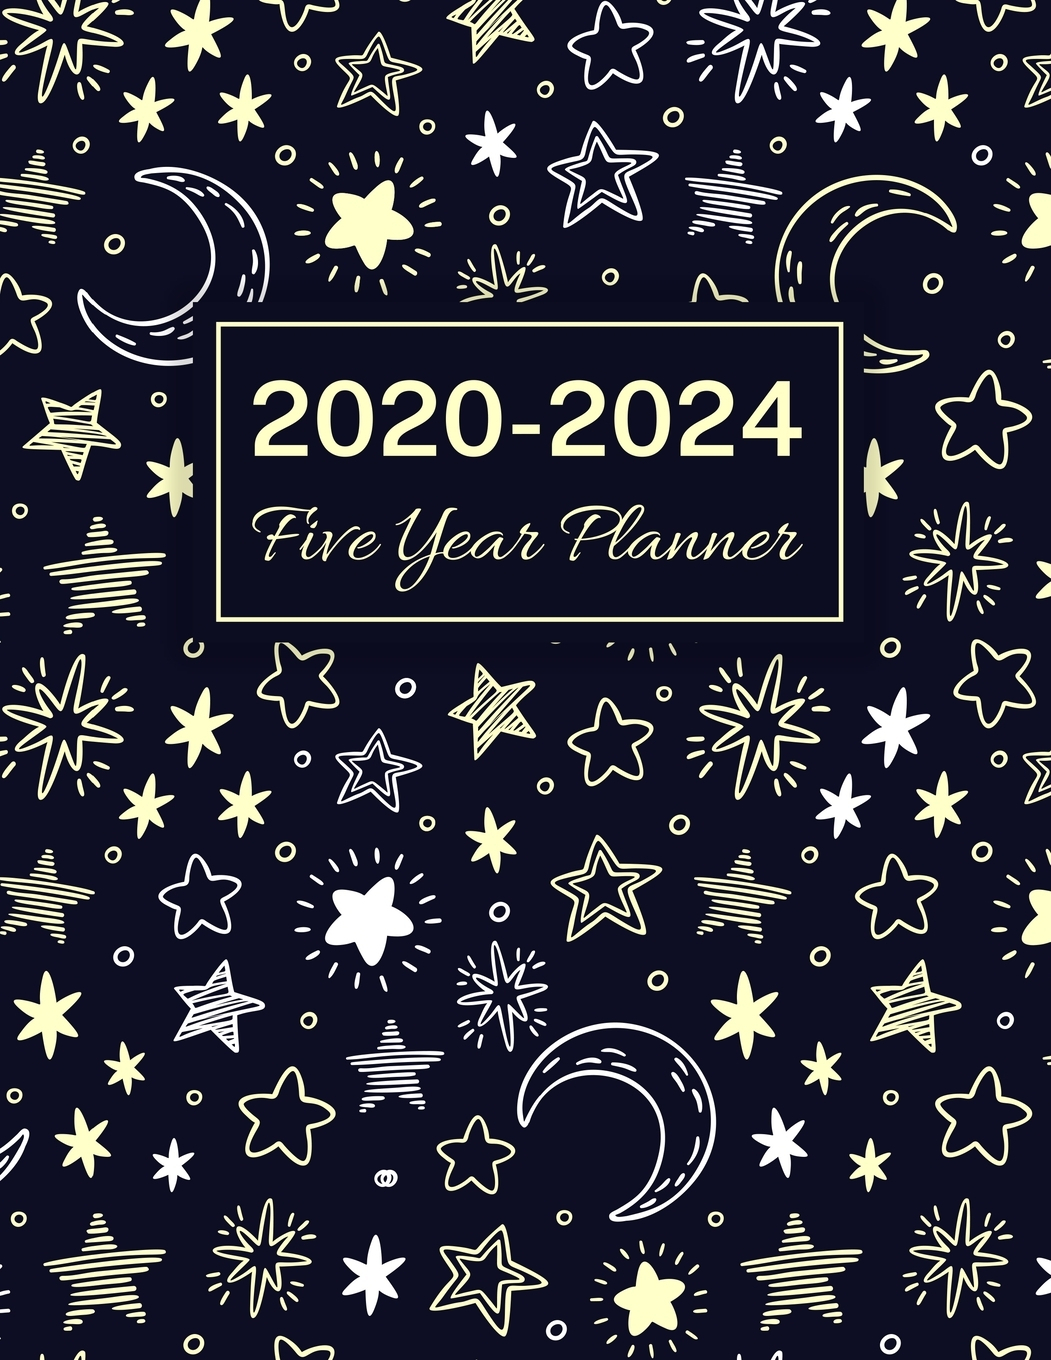 2020 2024 Five Year Planner Starry Sky 60 Months